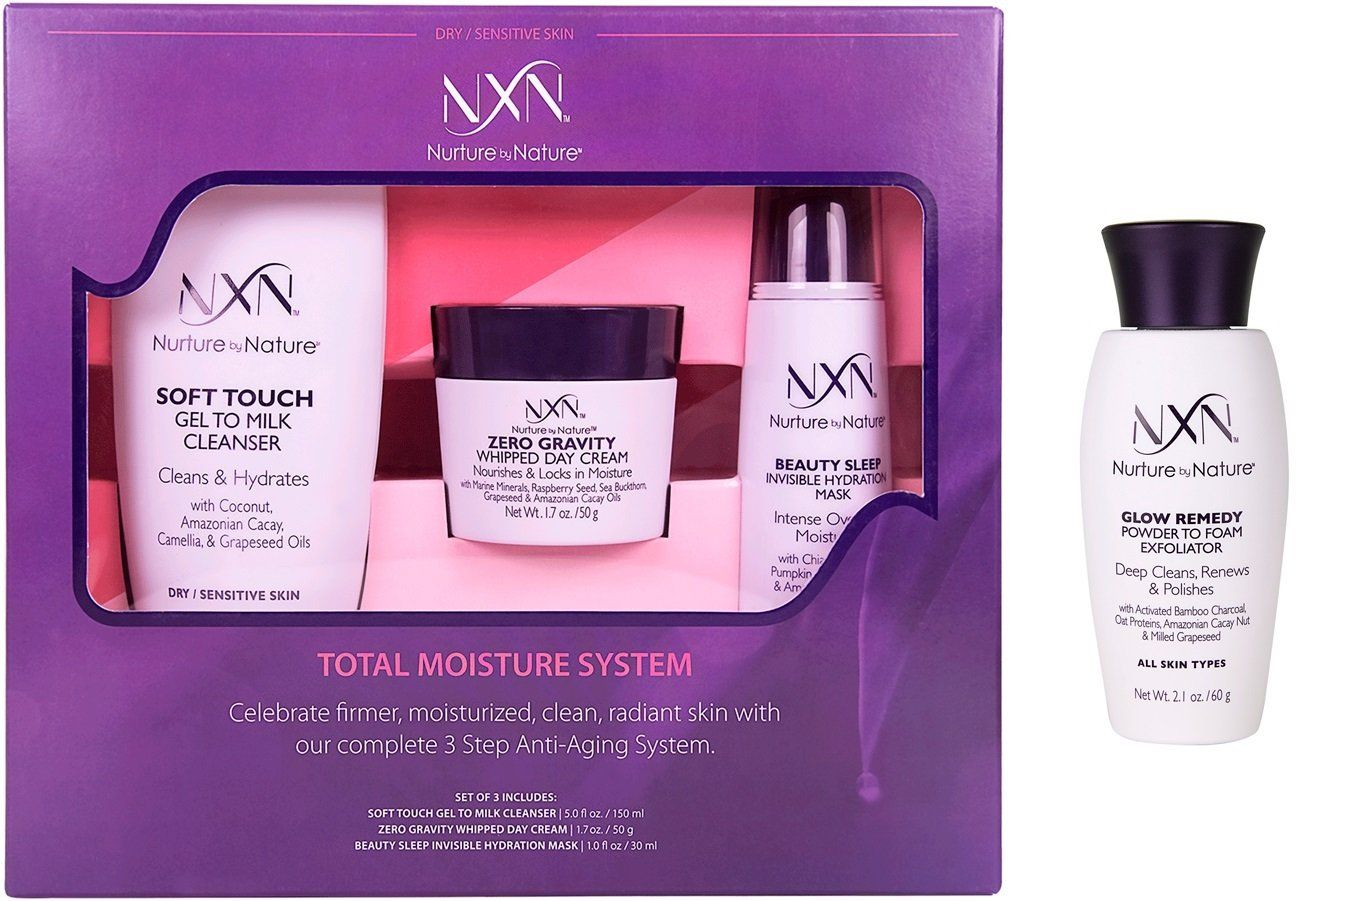 Nxn Total Moisture Antiaging Kit Natural And Organic 4piece Skin Care System For Dry Sensitive Skin Exfoliating Face Scrub Exfoliate Face Dry Sensitive Skin